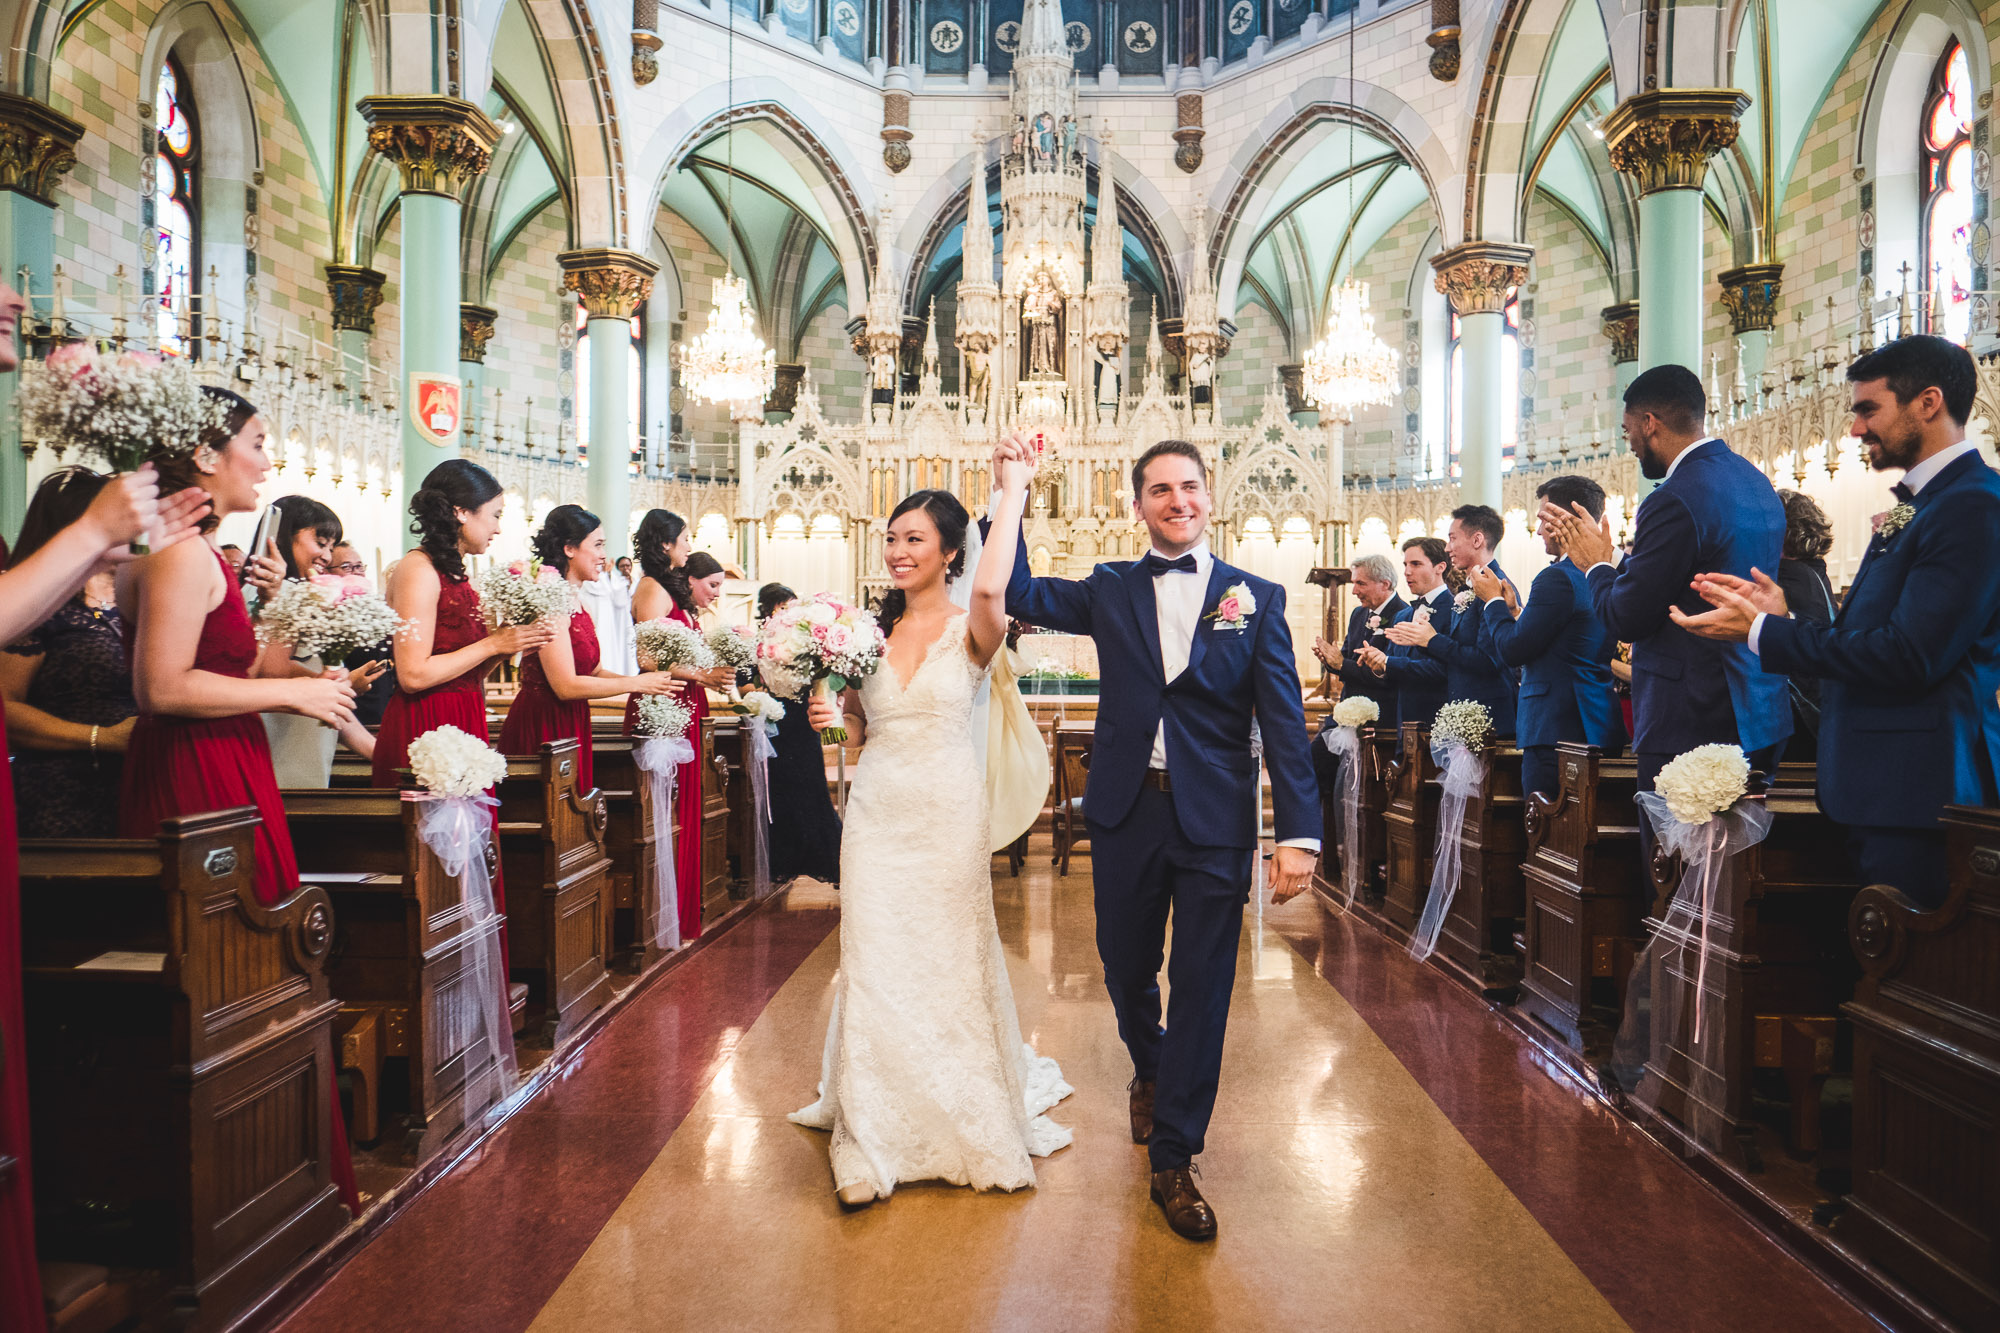 bride-and-groom-walking-down-aisle-montreal-wedding